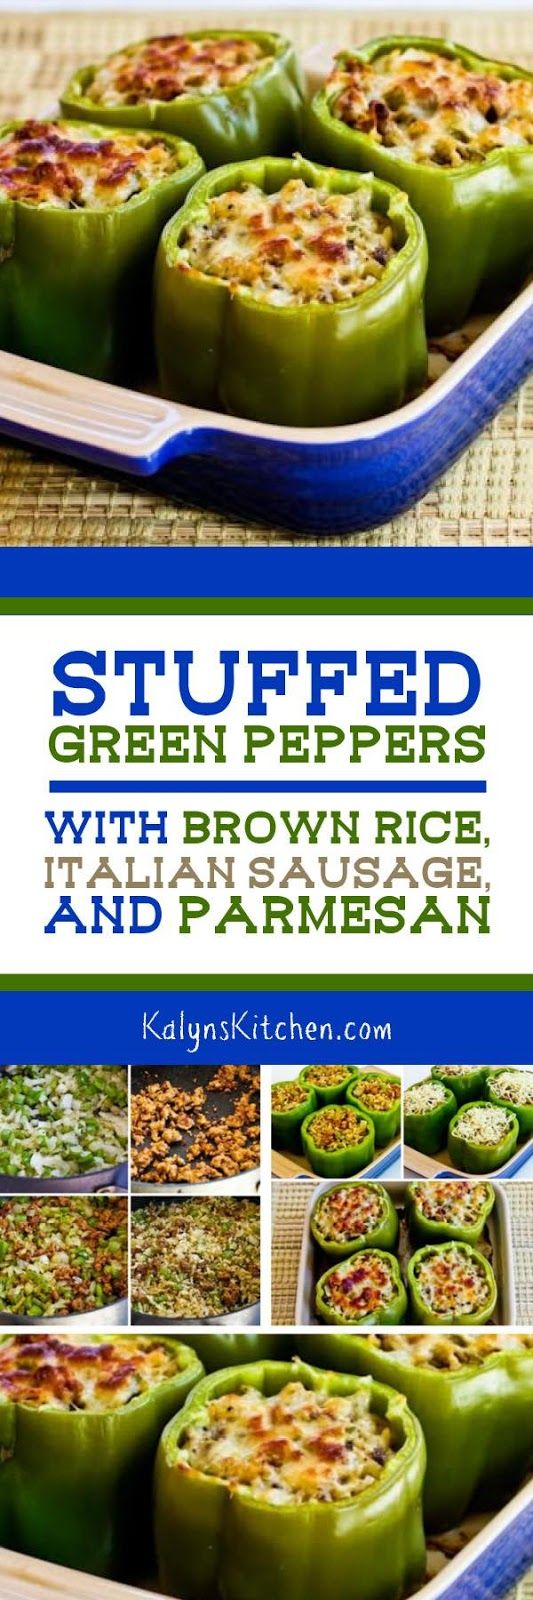 These Stuffed Green Peppers with Brown Rice, Italian Sausage, and Parmesan have been HUGELY POPULAR on the blog. If you prefer lower-carbs, the recipe has a link to a similar recipe without the rice or you can substitute cauliflower rice, but if you're a stuffed peppers fan, this is a MUST-MAKE recipe! [found on KalynsKitchen.com] #StuffedPeppers  #LowGlycemic #GlutenFree #StuffedPeppersSausageRice